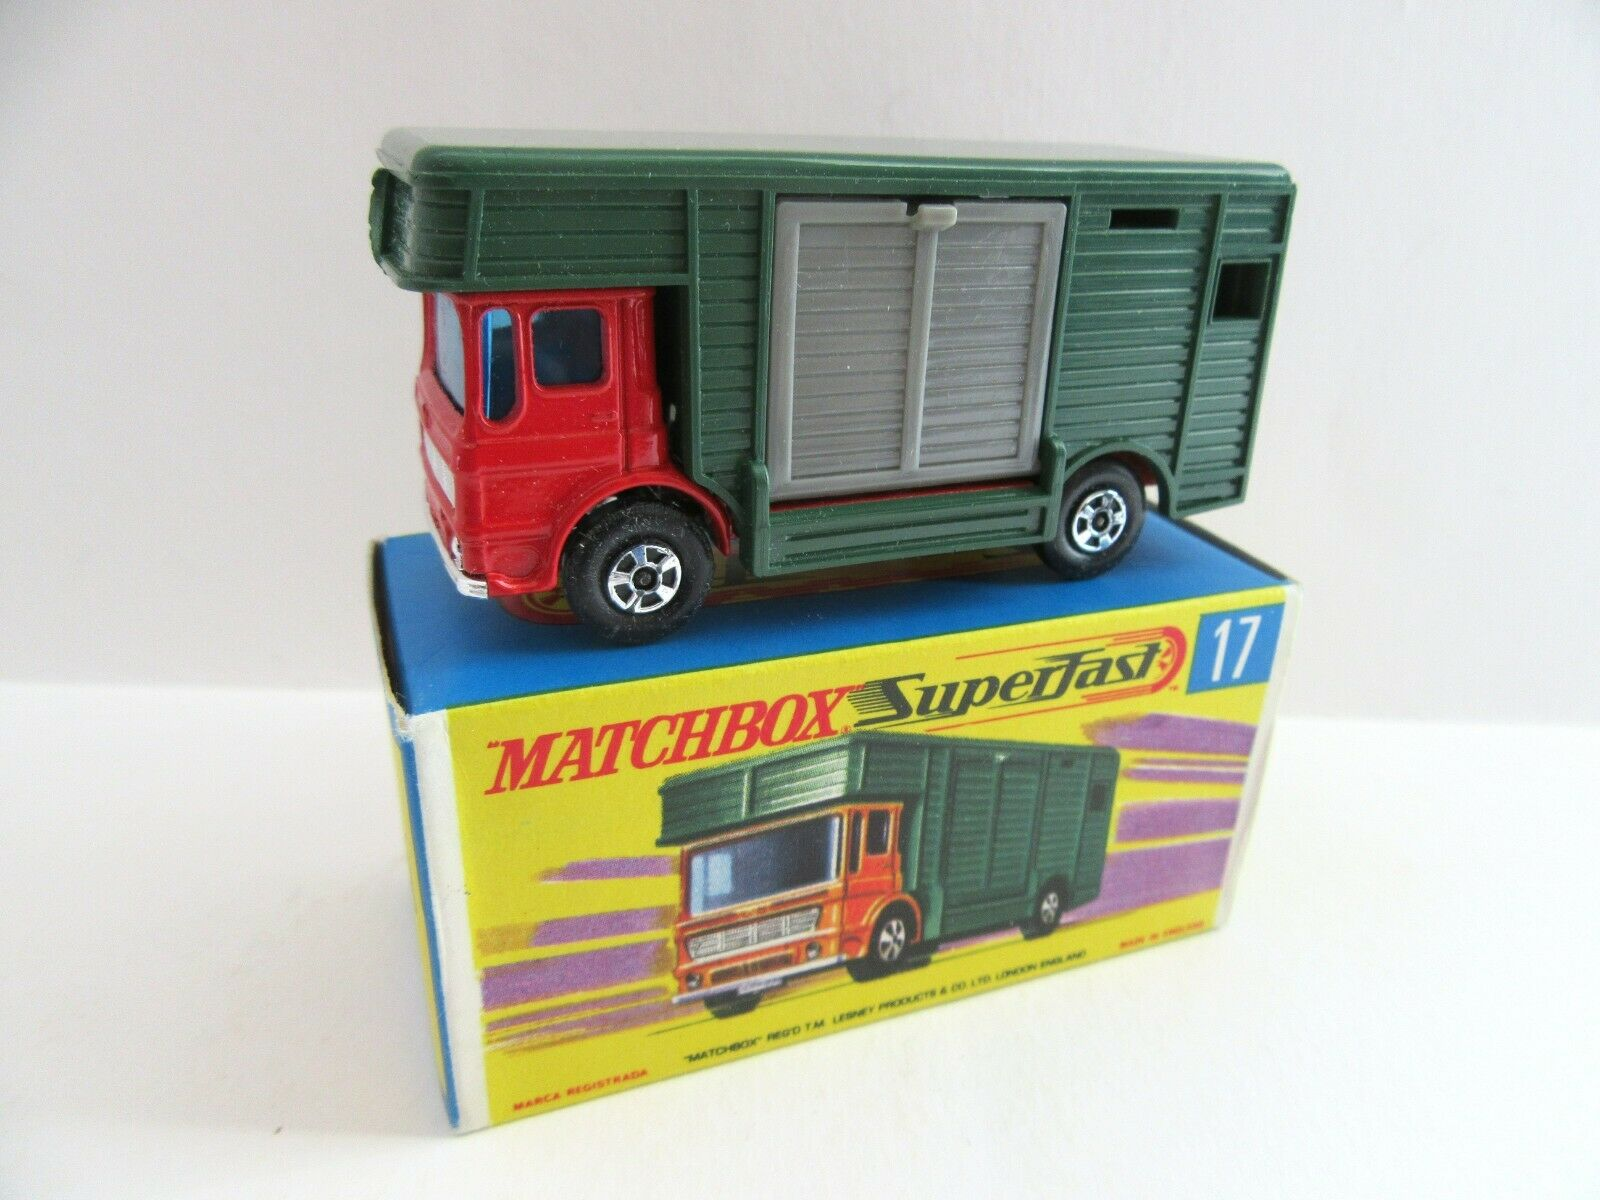 Matchbox Superfast 17 A AEC HORSE BOX-Rouge Vert-Comme neuf boxed